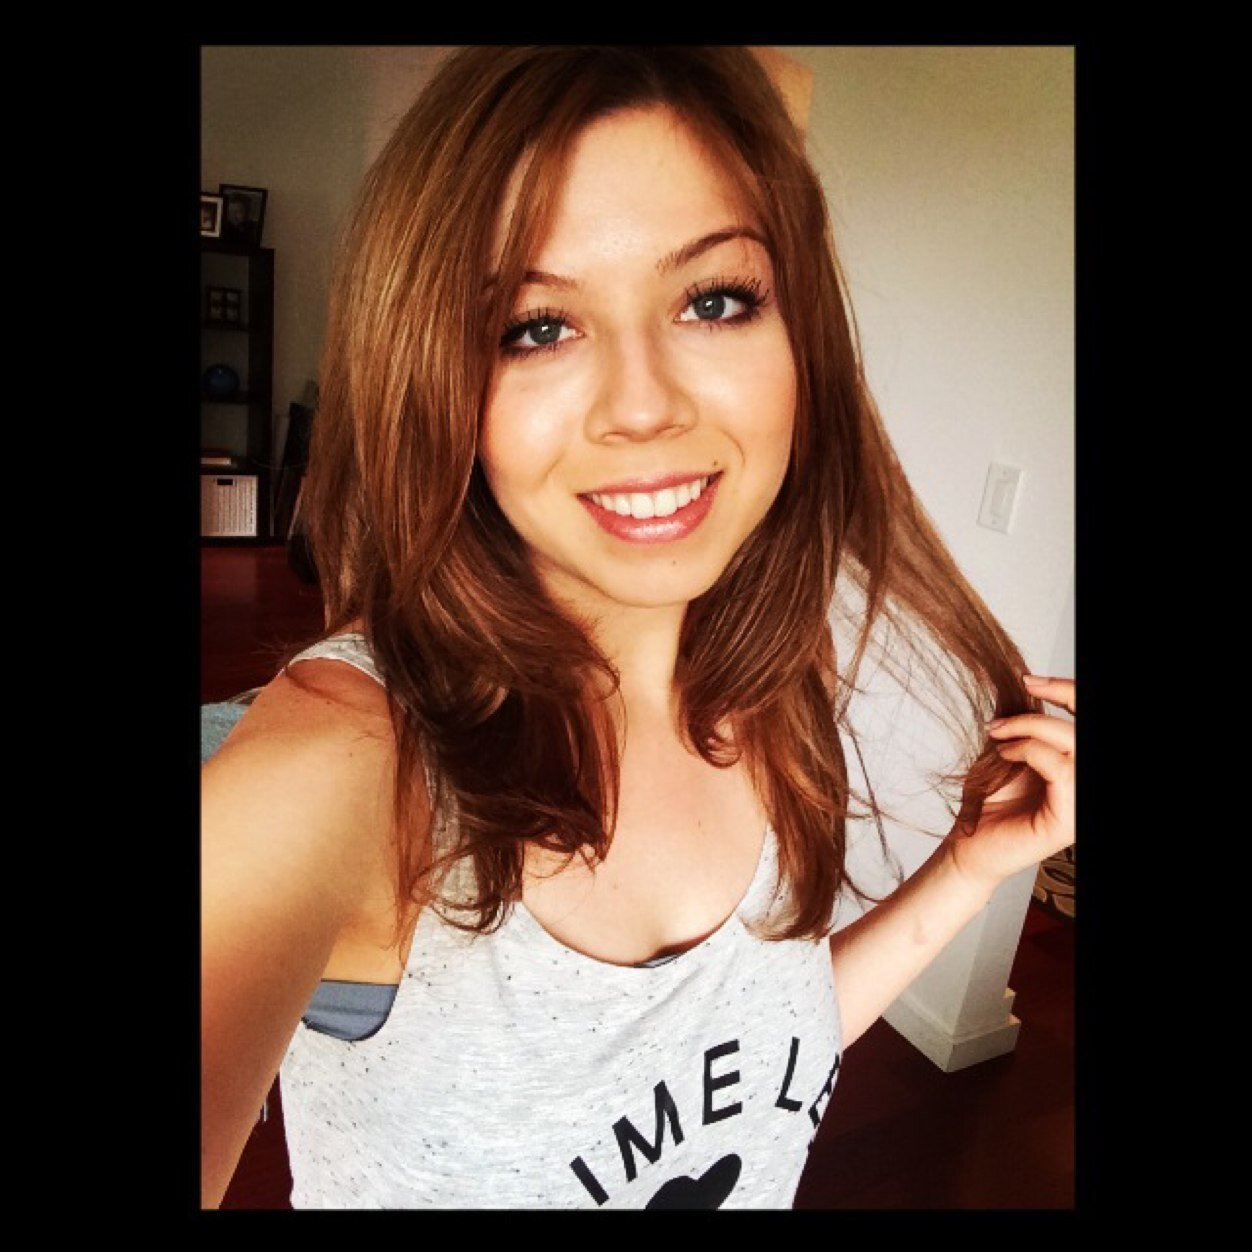 mccurdy s facts name jennette mccurdy age 24 years date of birth ...